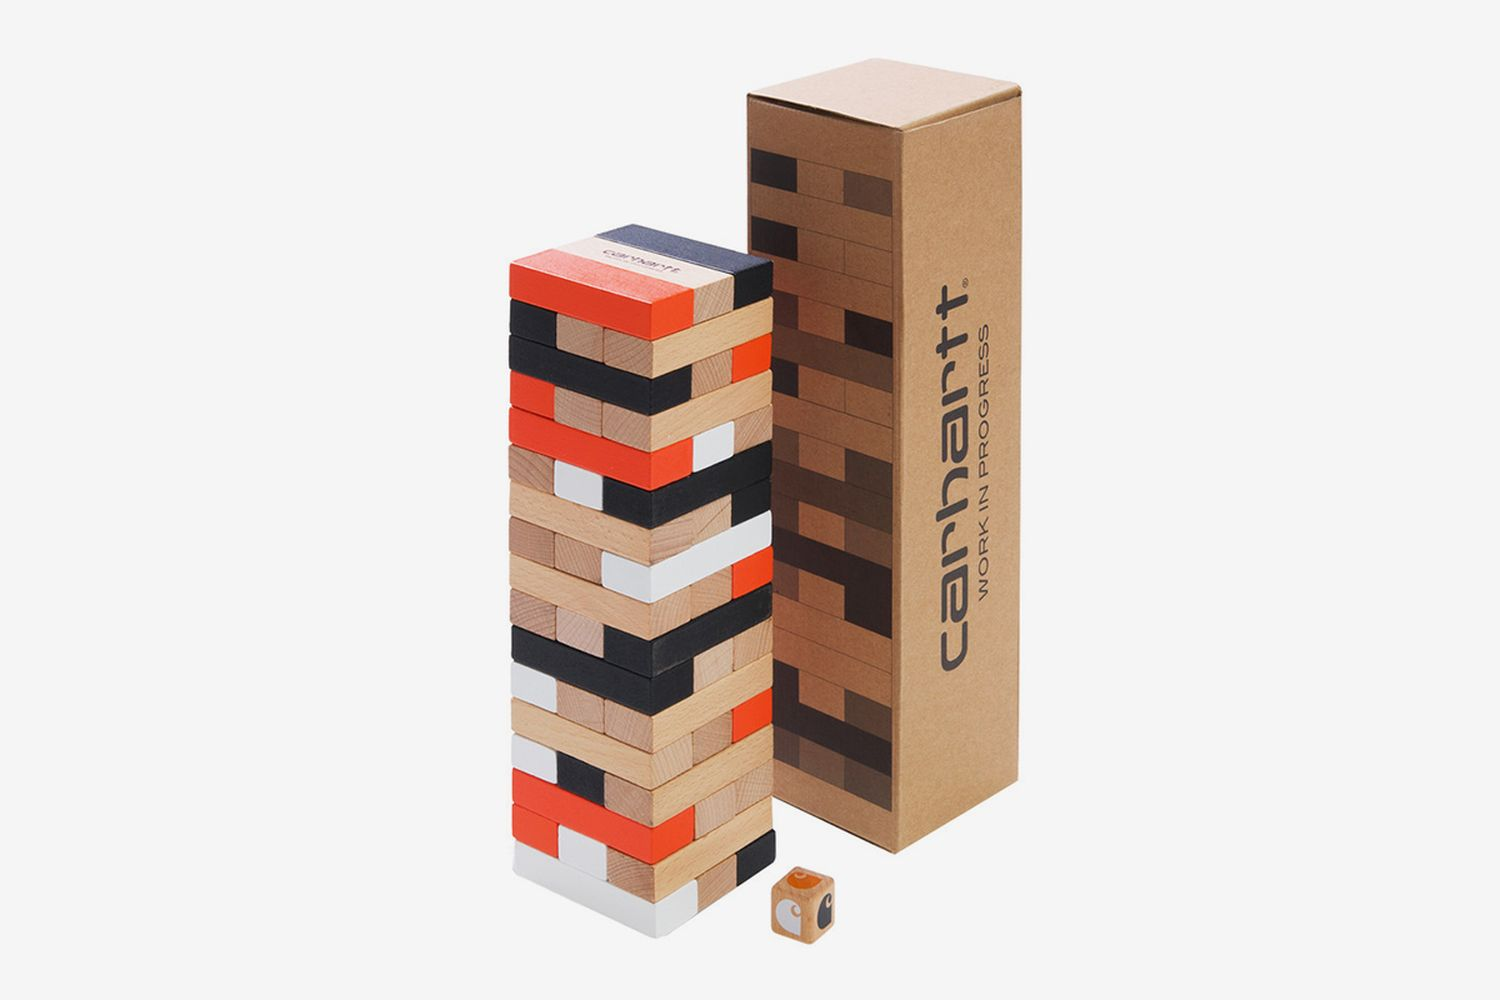 Stacking Blocks Game